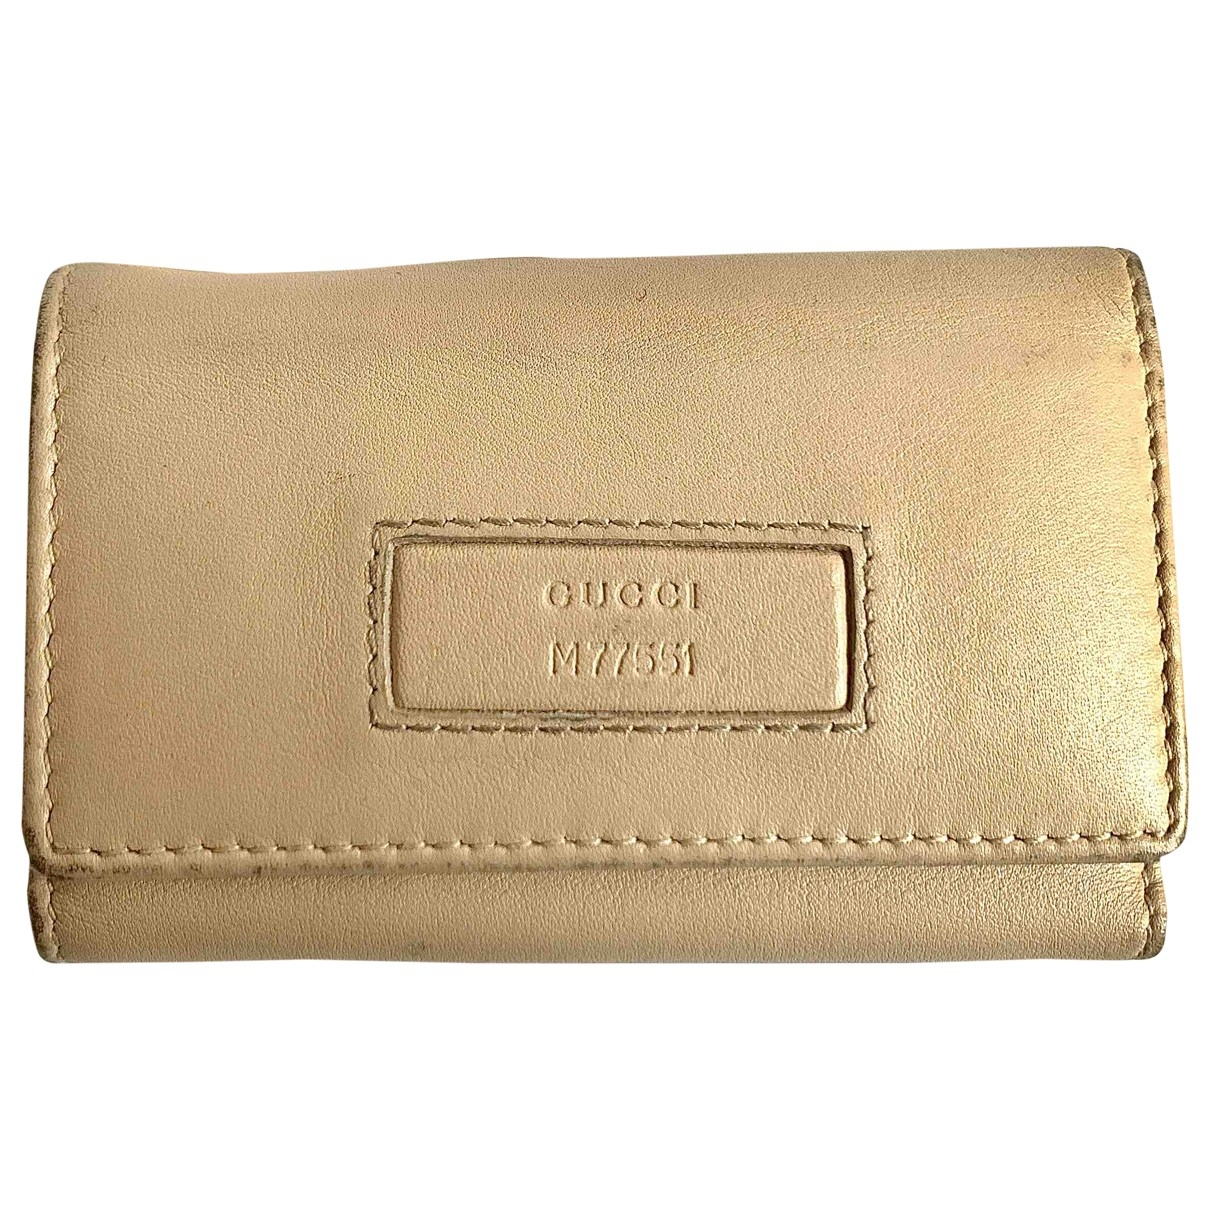 Gucci \N Beige Leather Purses, wallet & cases for Women \N